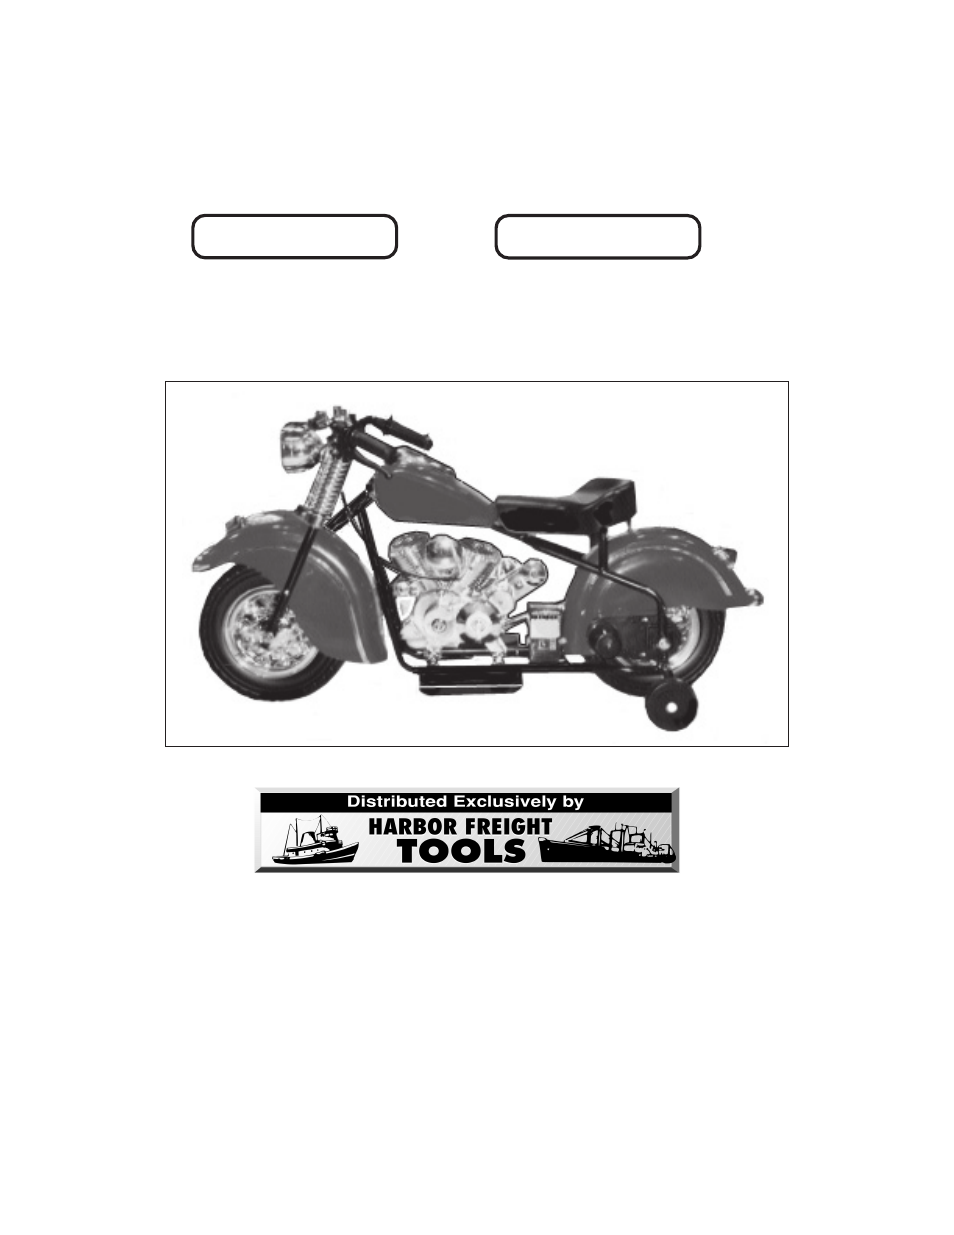 harbor freight tools 03514 user manual 10 pages rh manualsdir com Harbor Freight Coupons Printable Harbor Freight.com